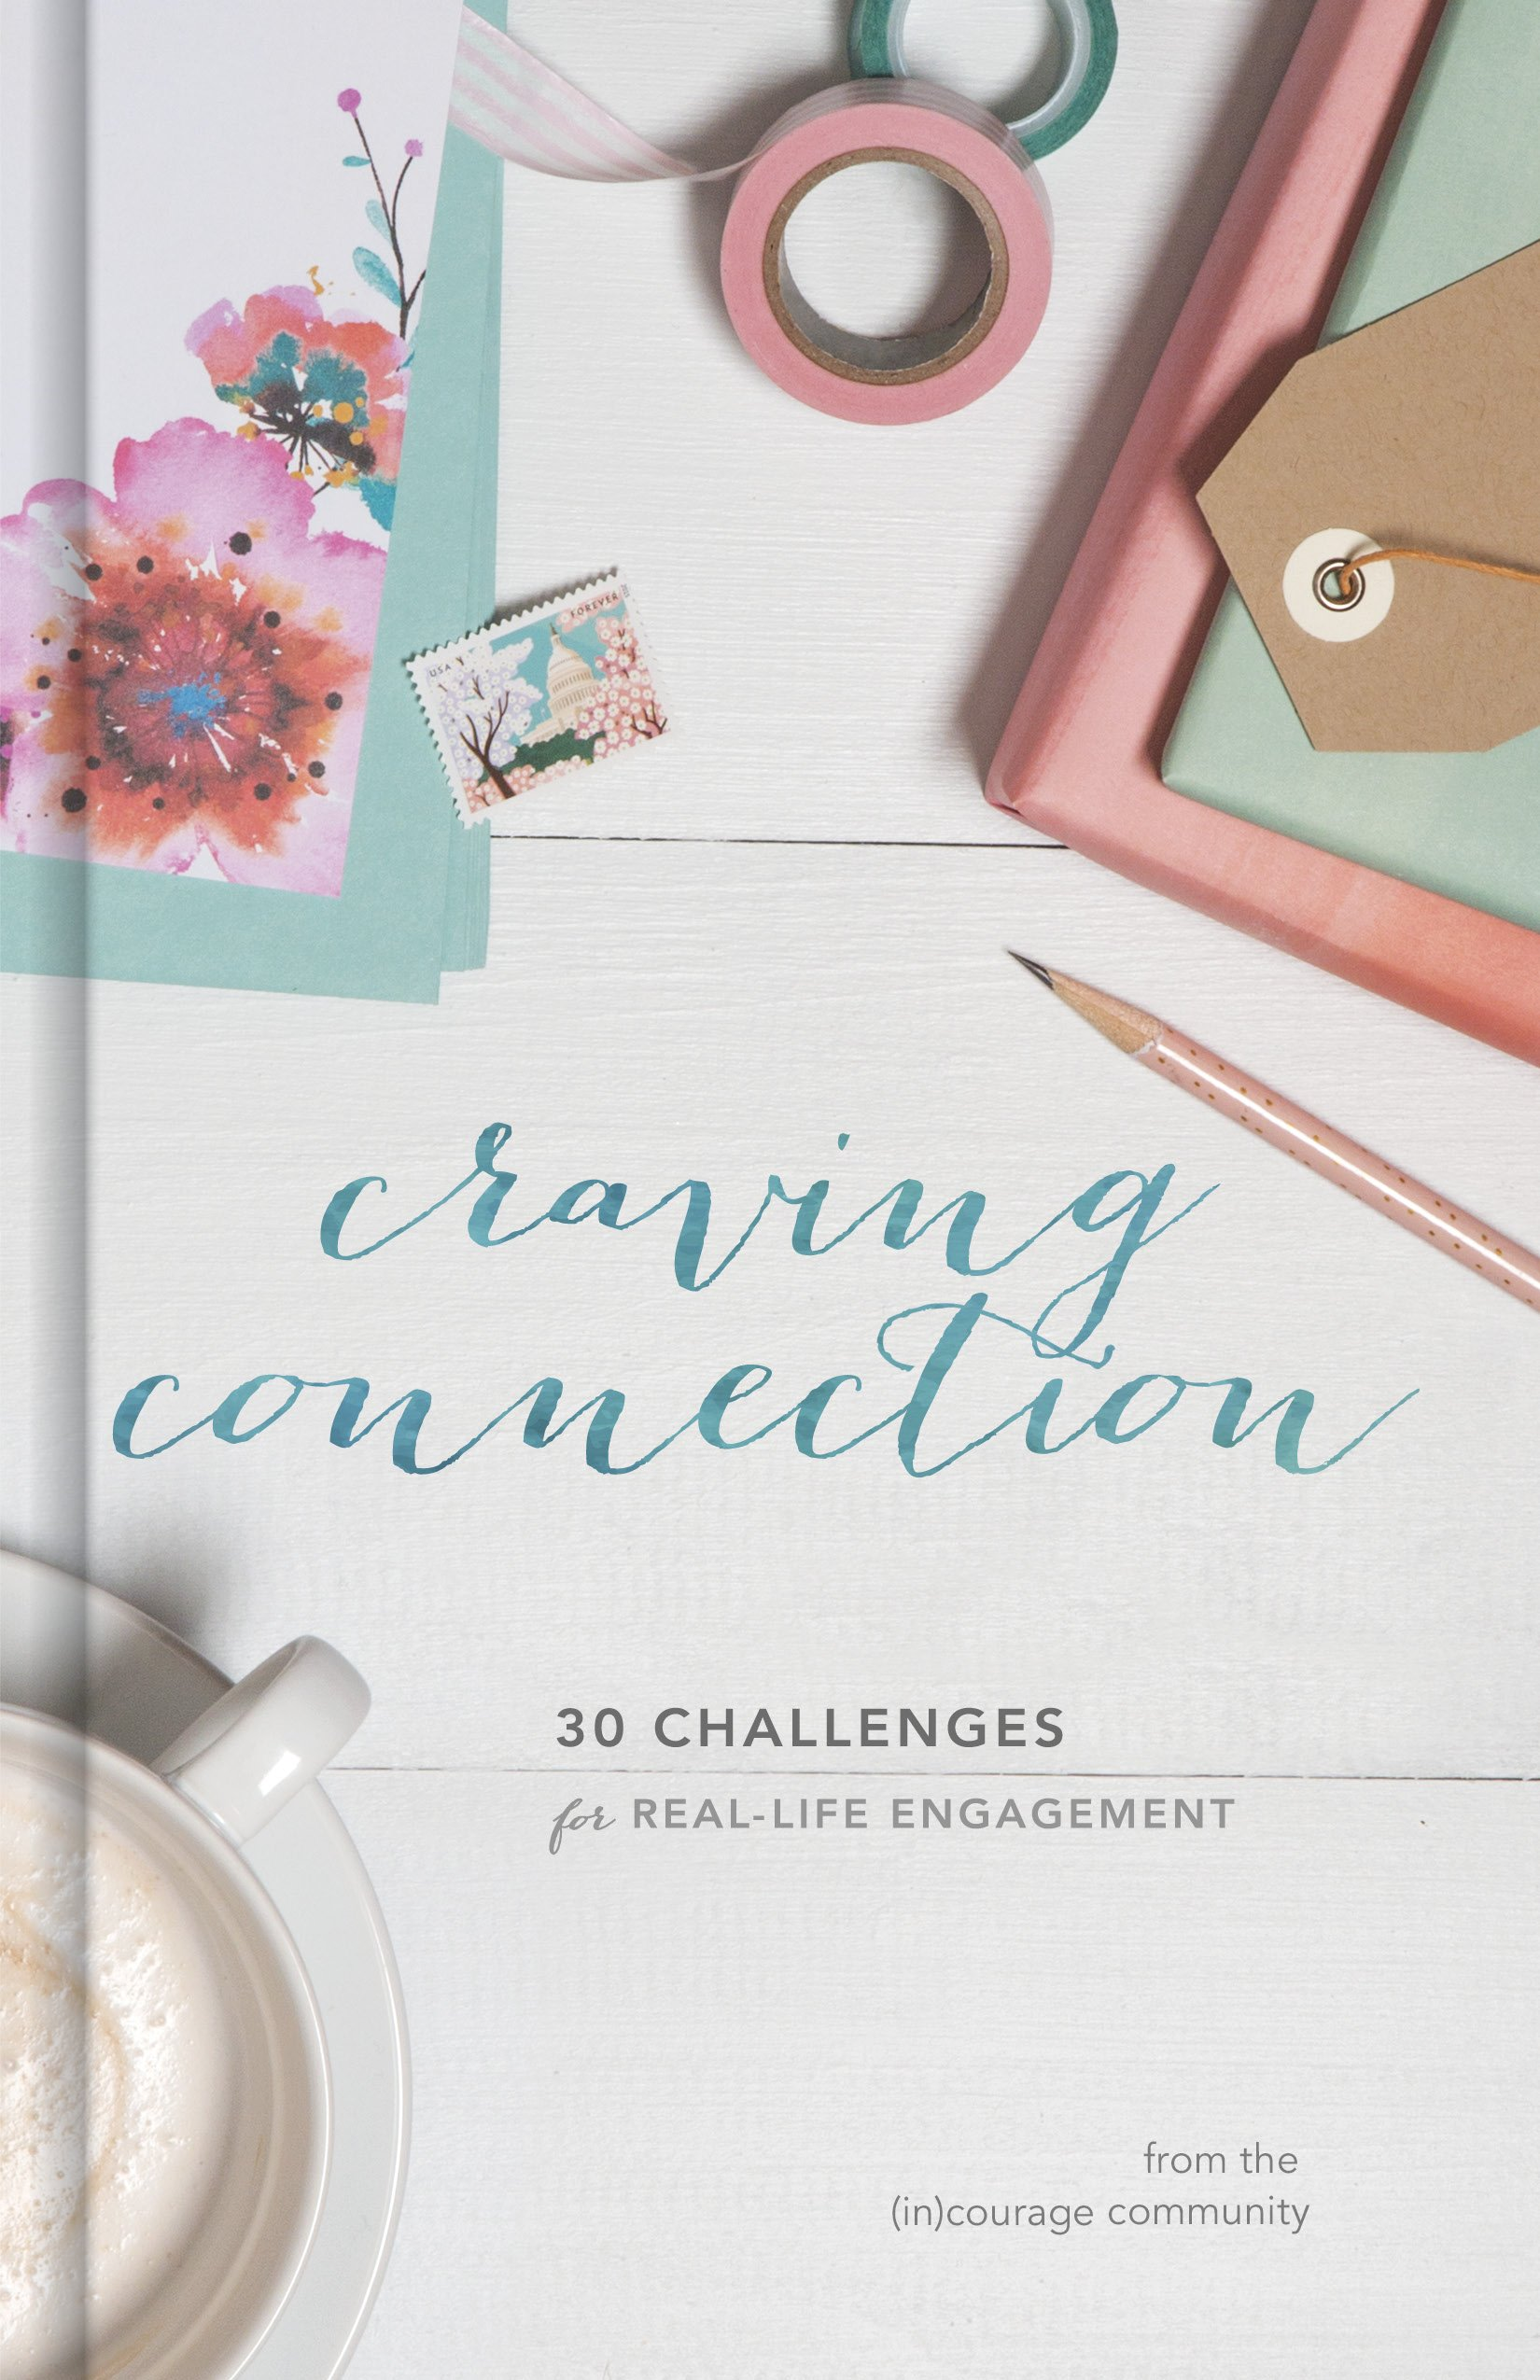 Craving Connection: 30 Challenges for Real-Life Engagement PDF